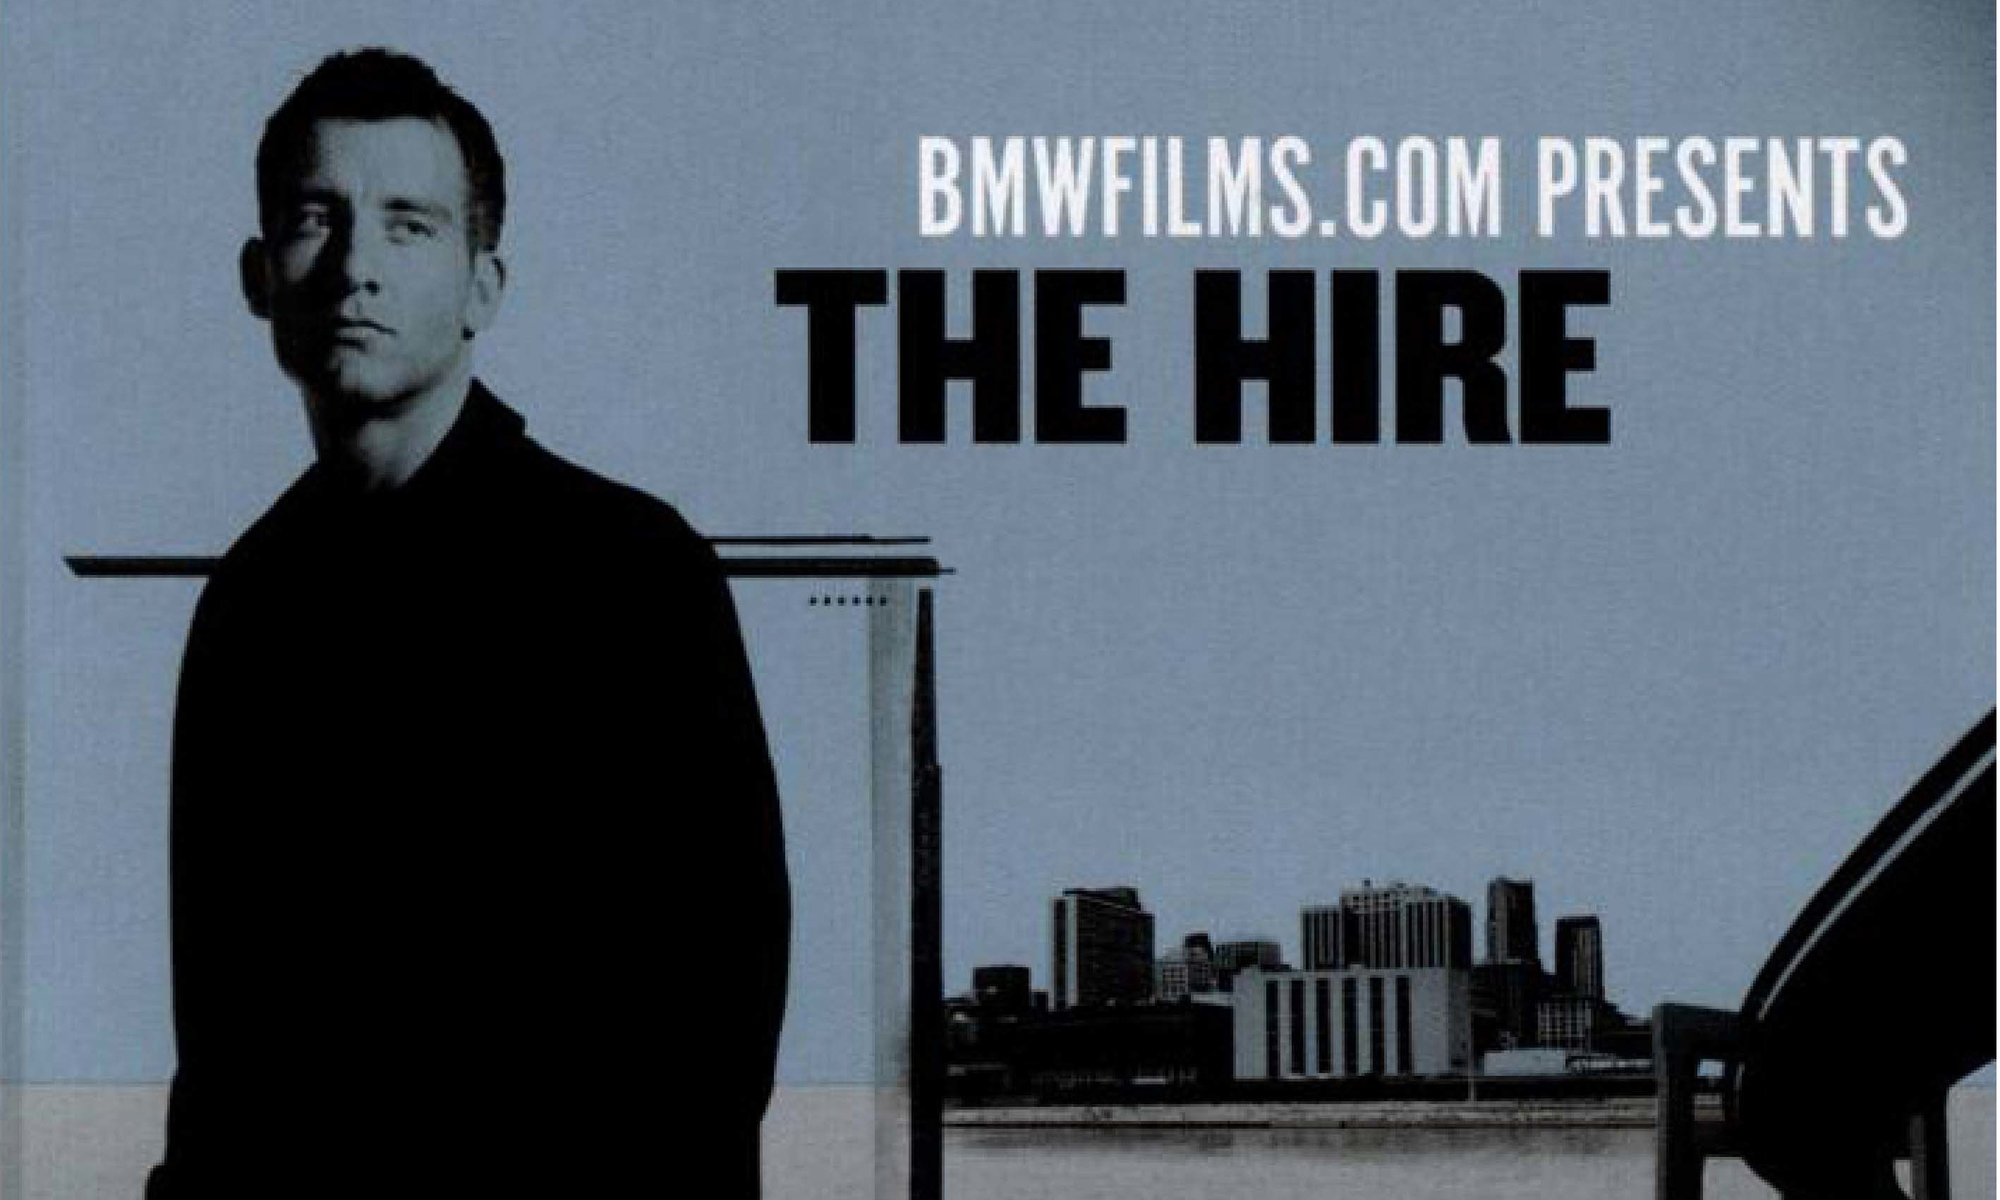 the hire – chosen